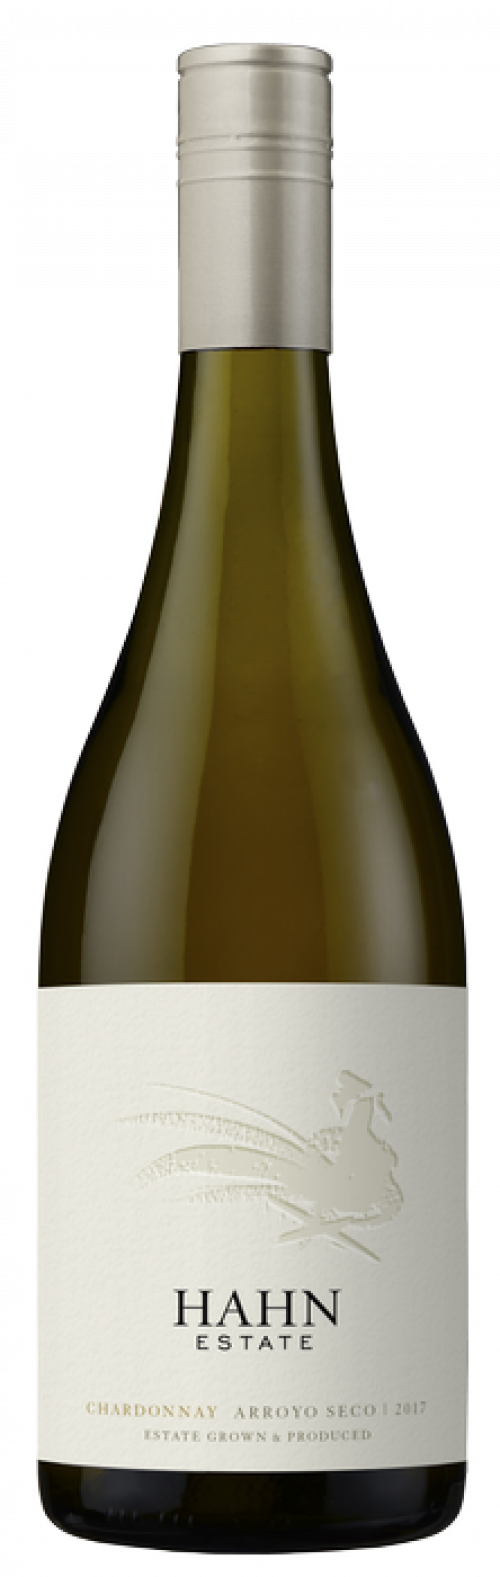 2018 Hahn Estates Chardonnay 750ml